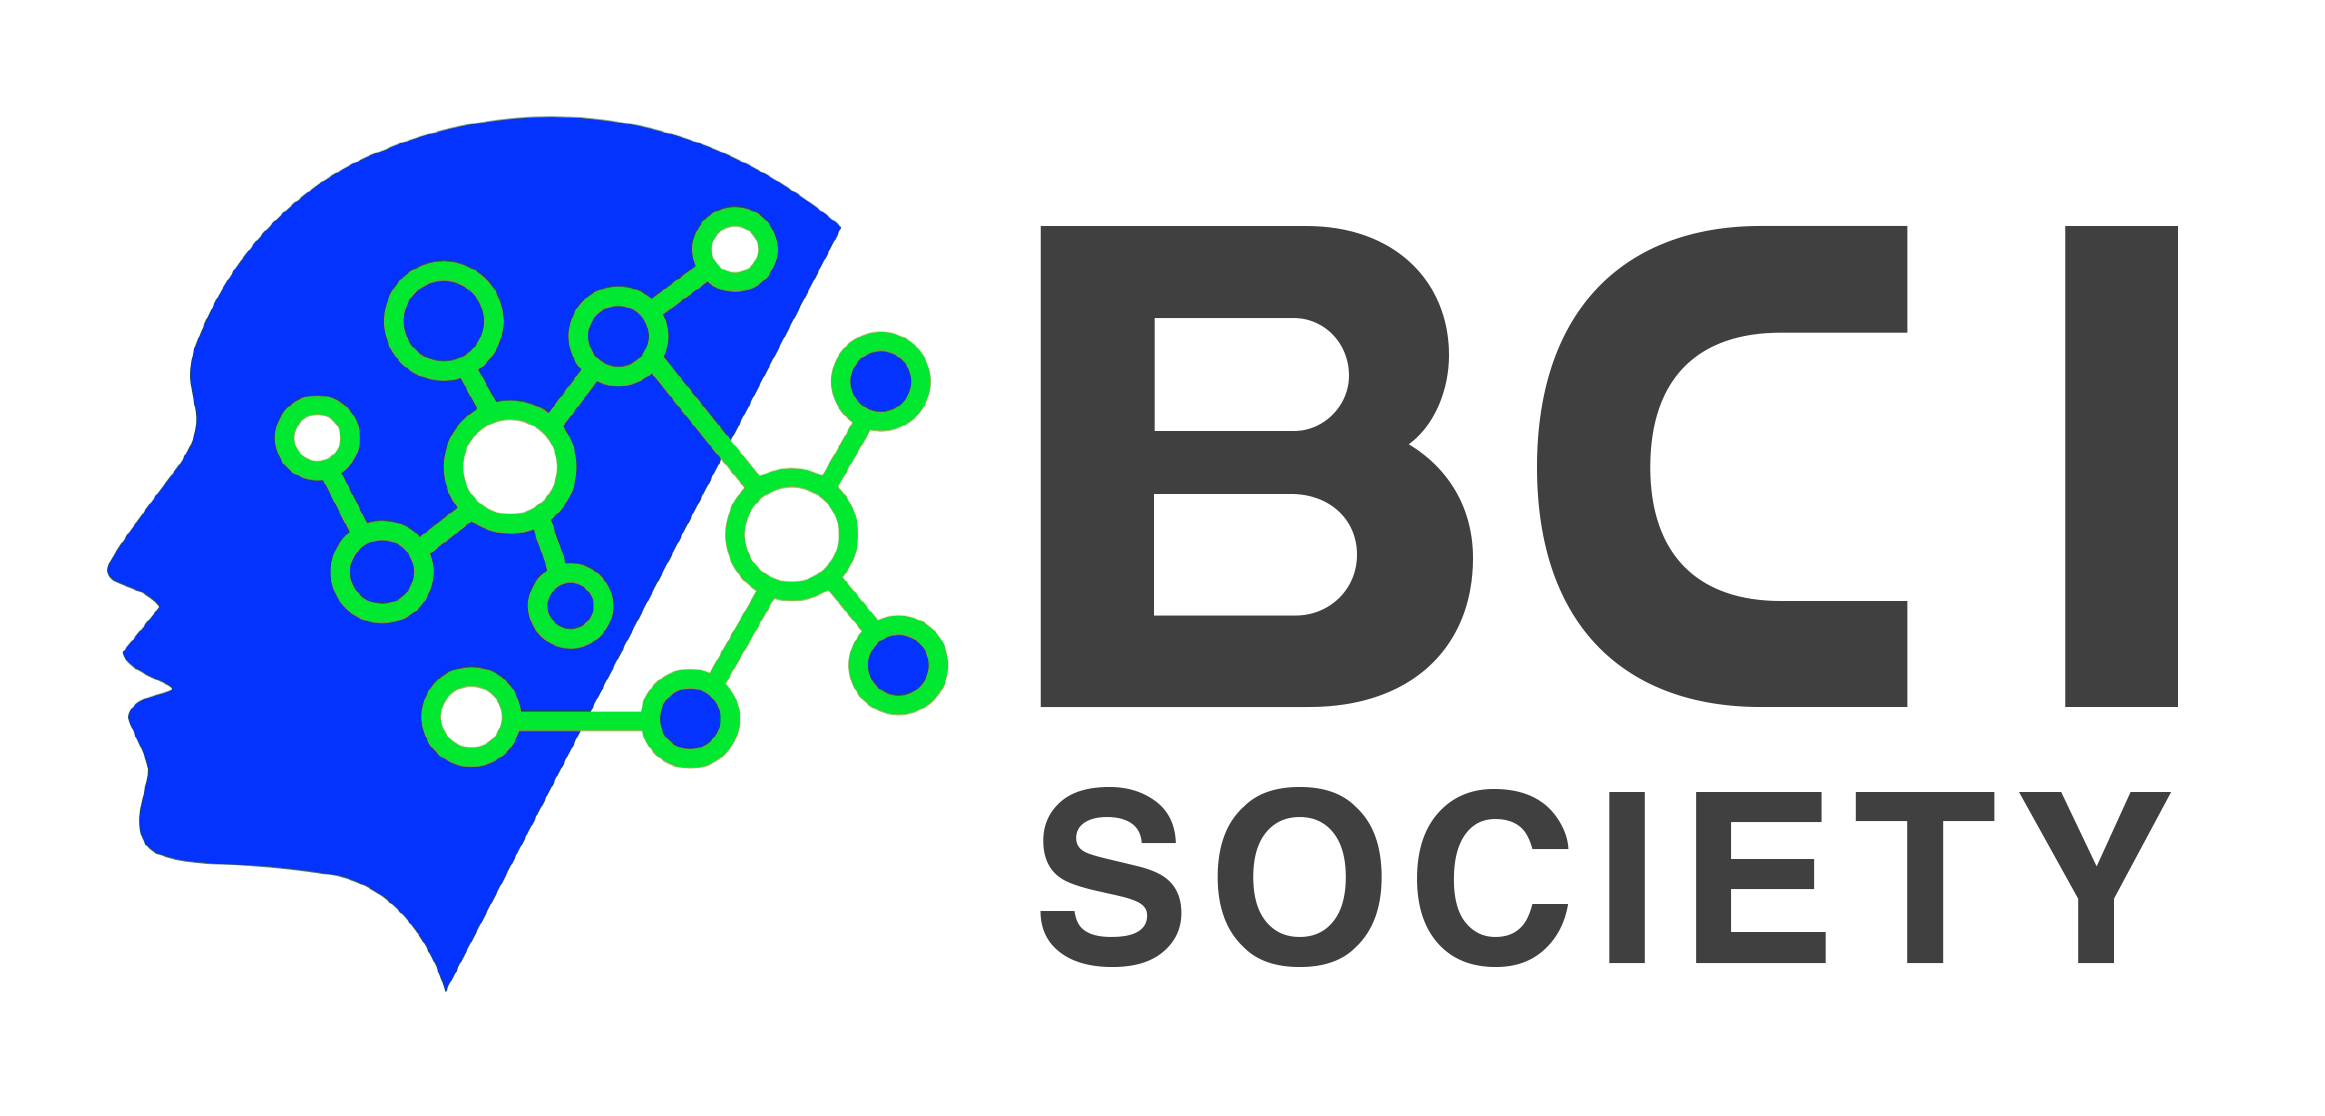 bcisociety.org